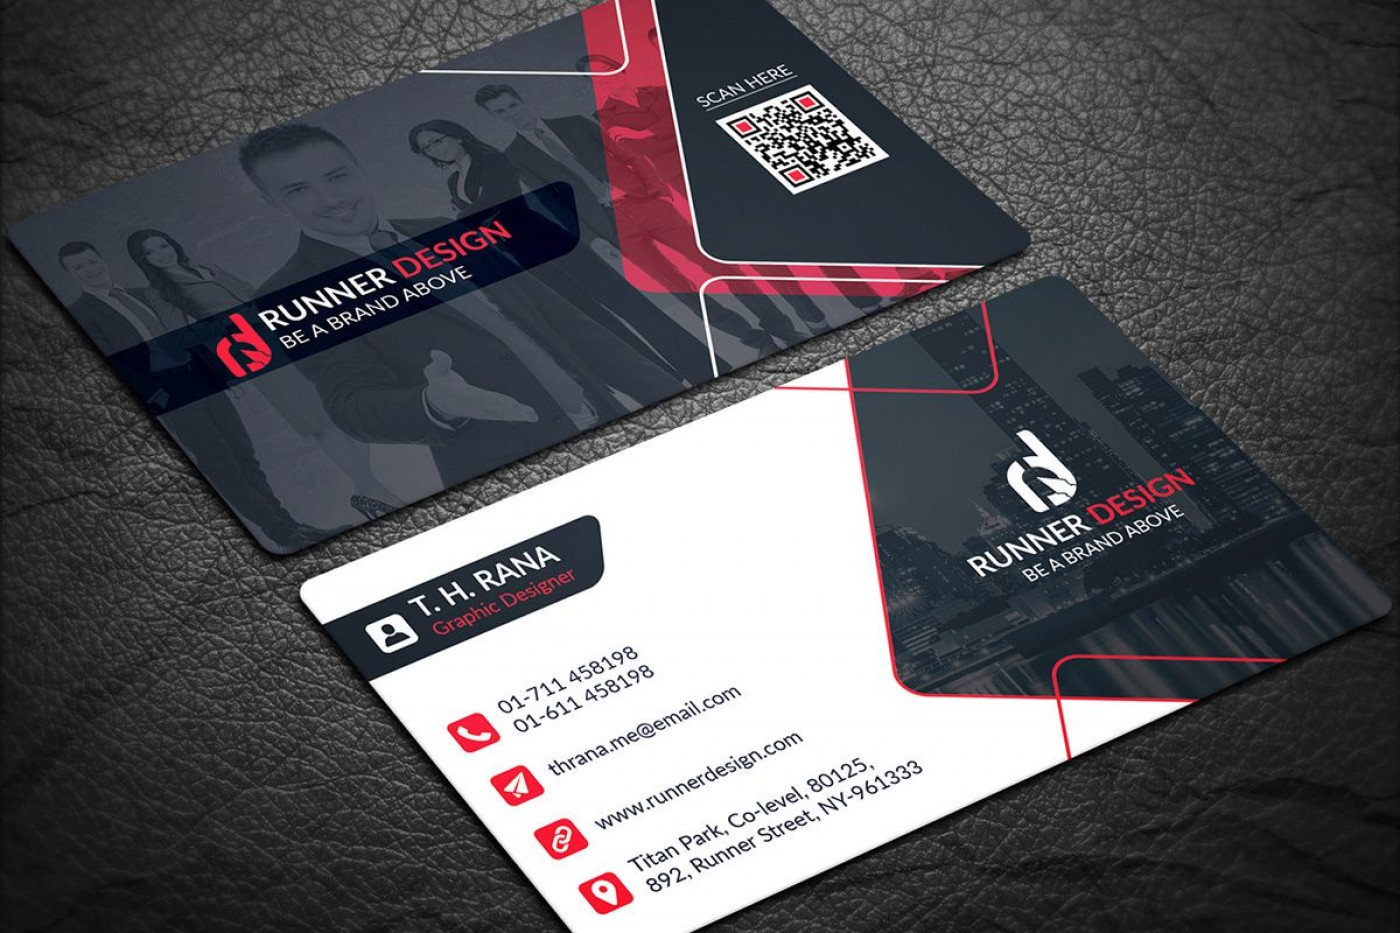 001 Staggering Psd Busines Card Template High Definition  With Bleed And Crop Mark Vistaprint Free1400